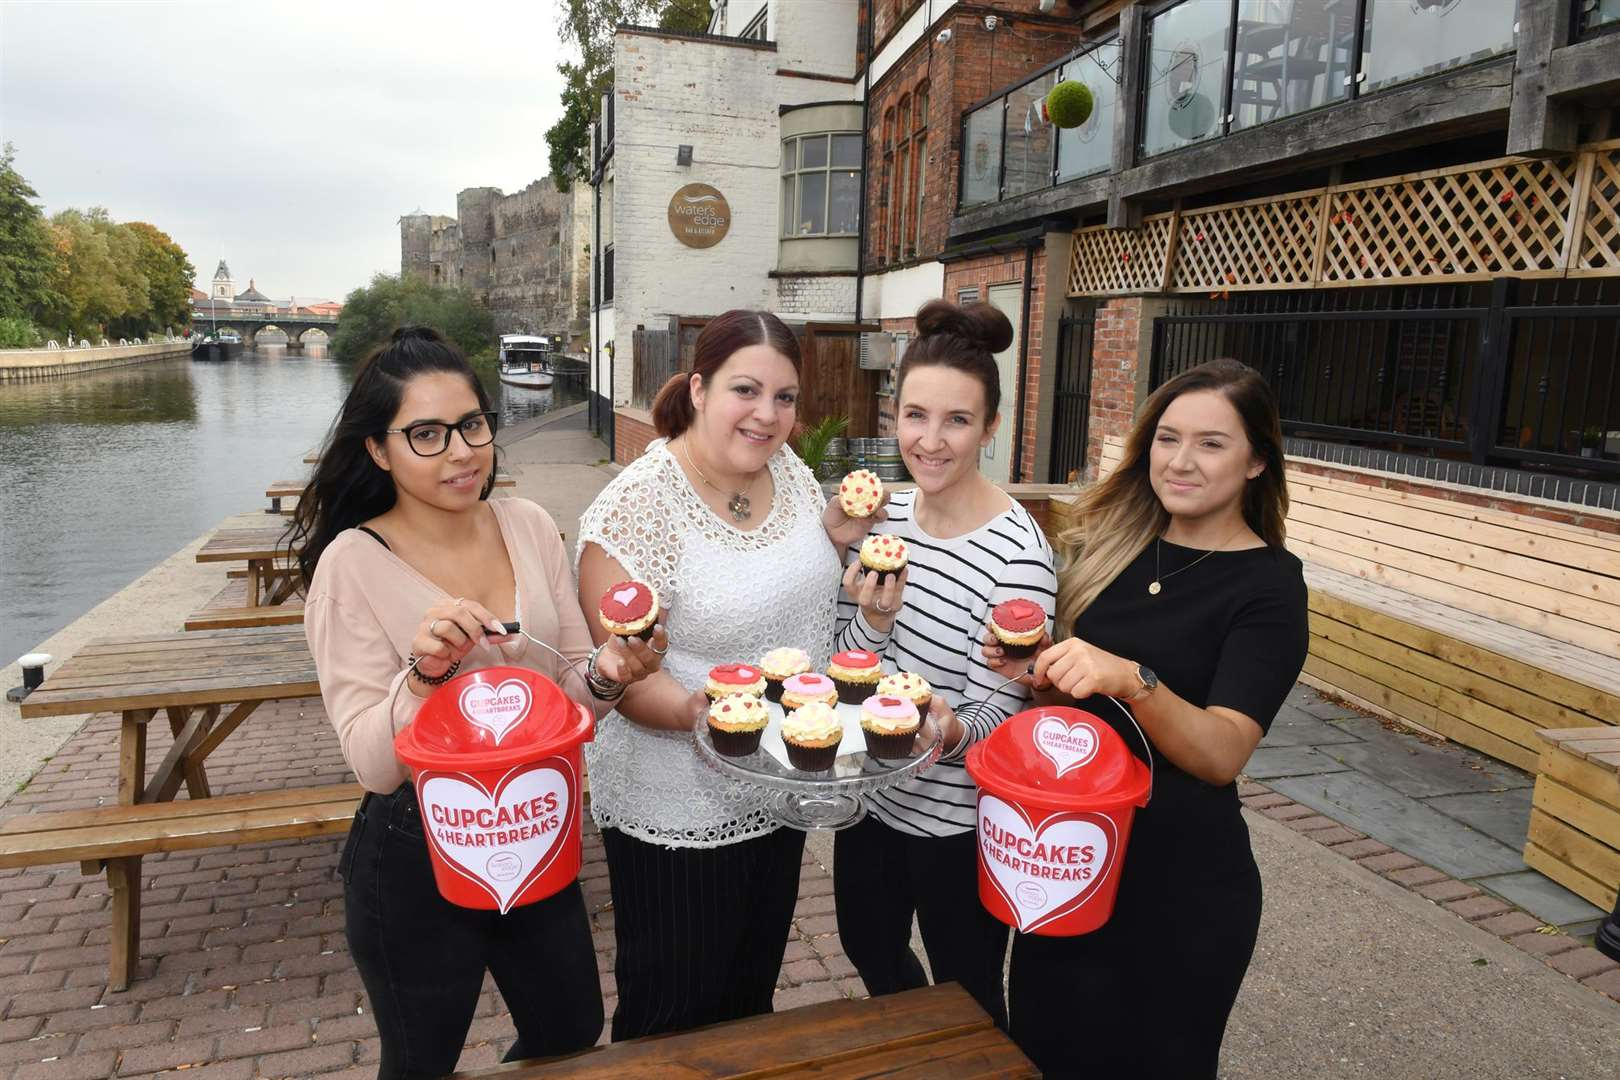 Water's Edge, Newark, are raising money for a defibrillator after doing a first aid course, starting the fundraising with a cupcake sale. L-R Marta Carmo (front of house), Donna Boxall (general manager), Leigh Graham (cupcake maker), Eloise Shuckburgh (events manager). (4686119)